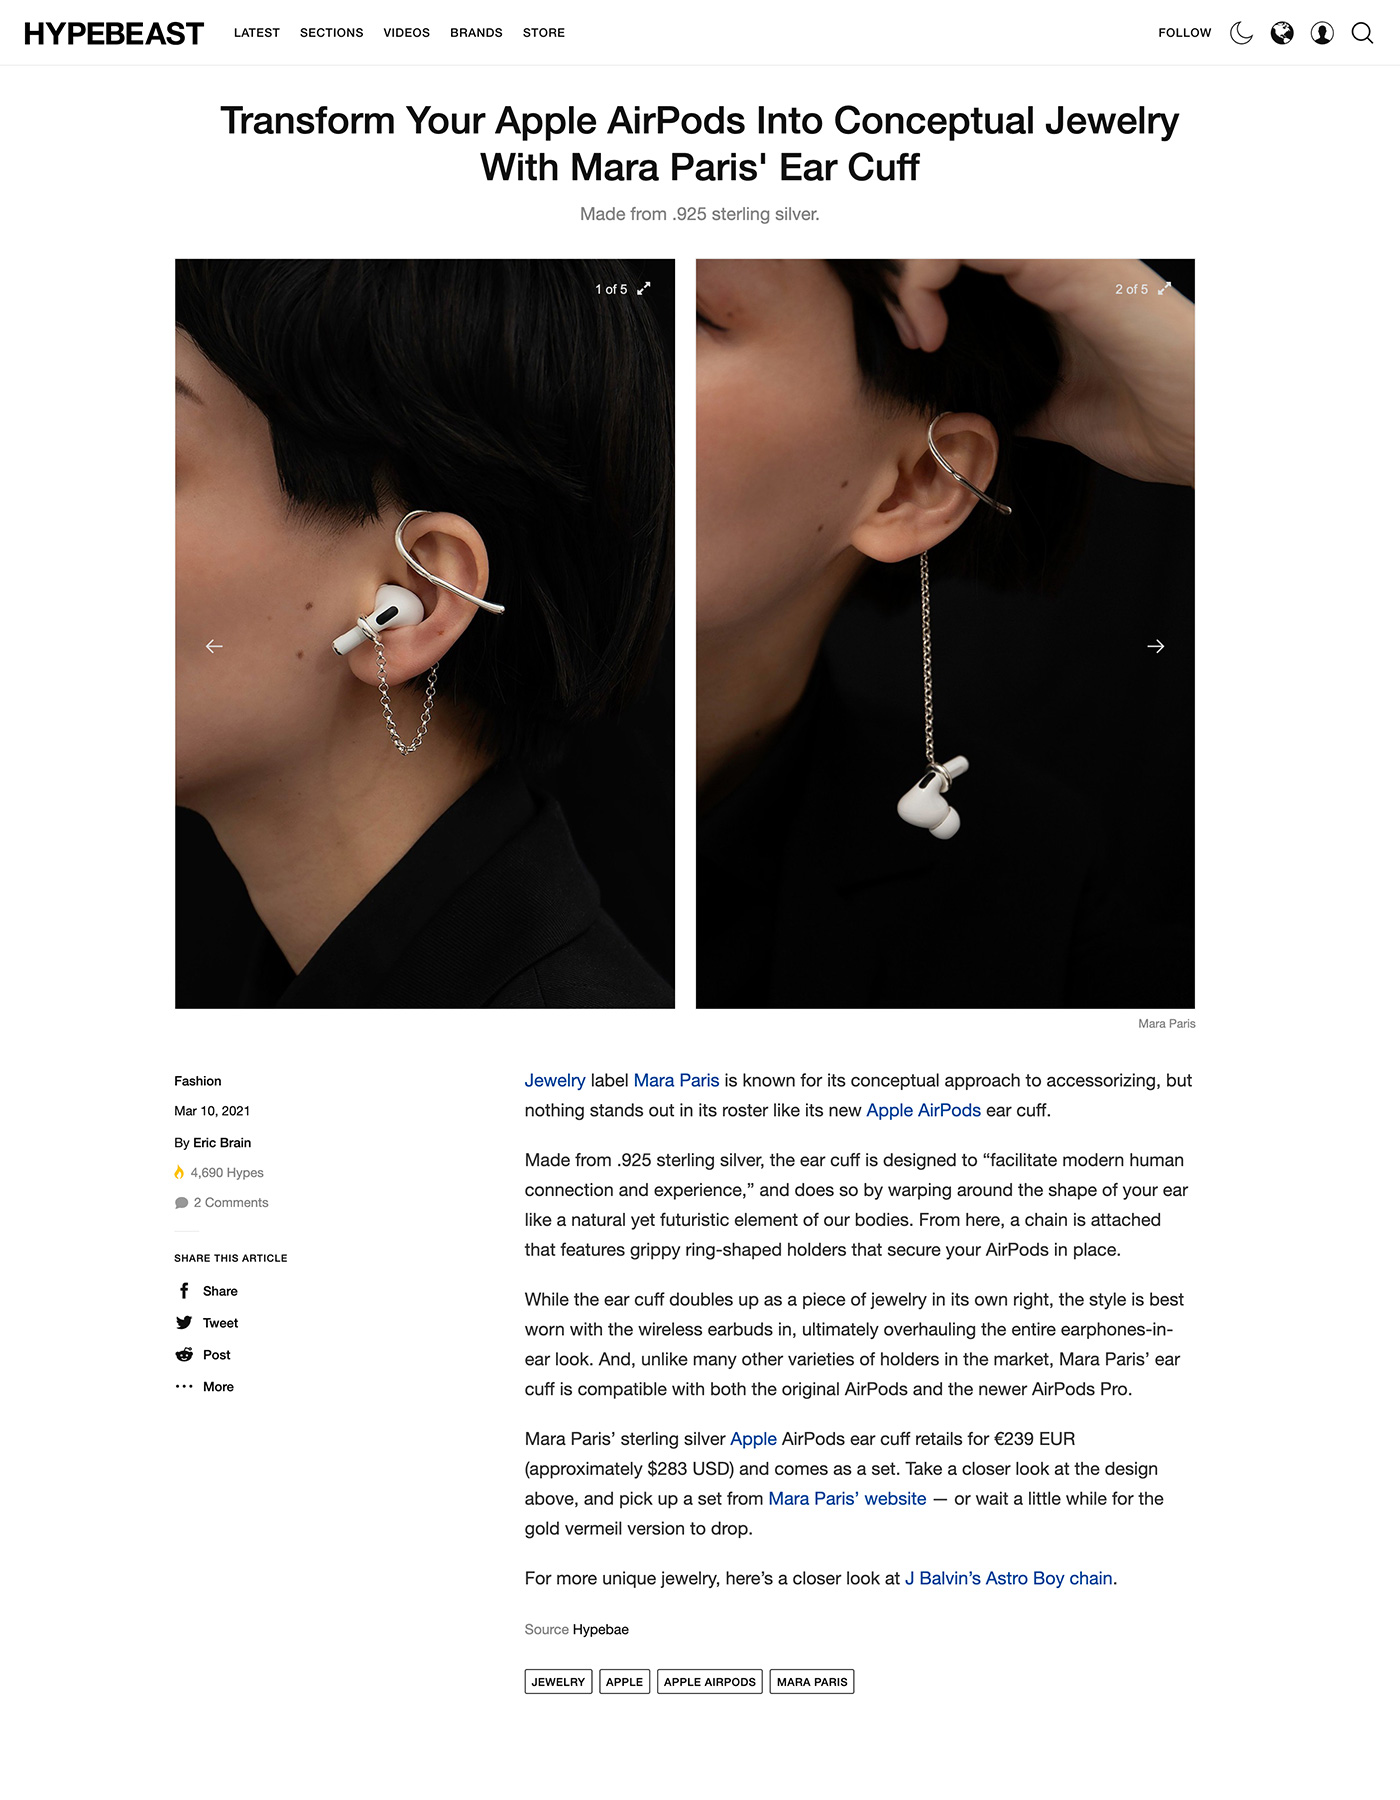 Hypebeast - Transform Your Apple AirPods Into Conceptual Jewelry With Mara Paris' Ear Cuff by Eric Brain